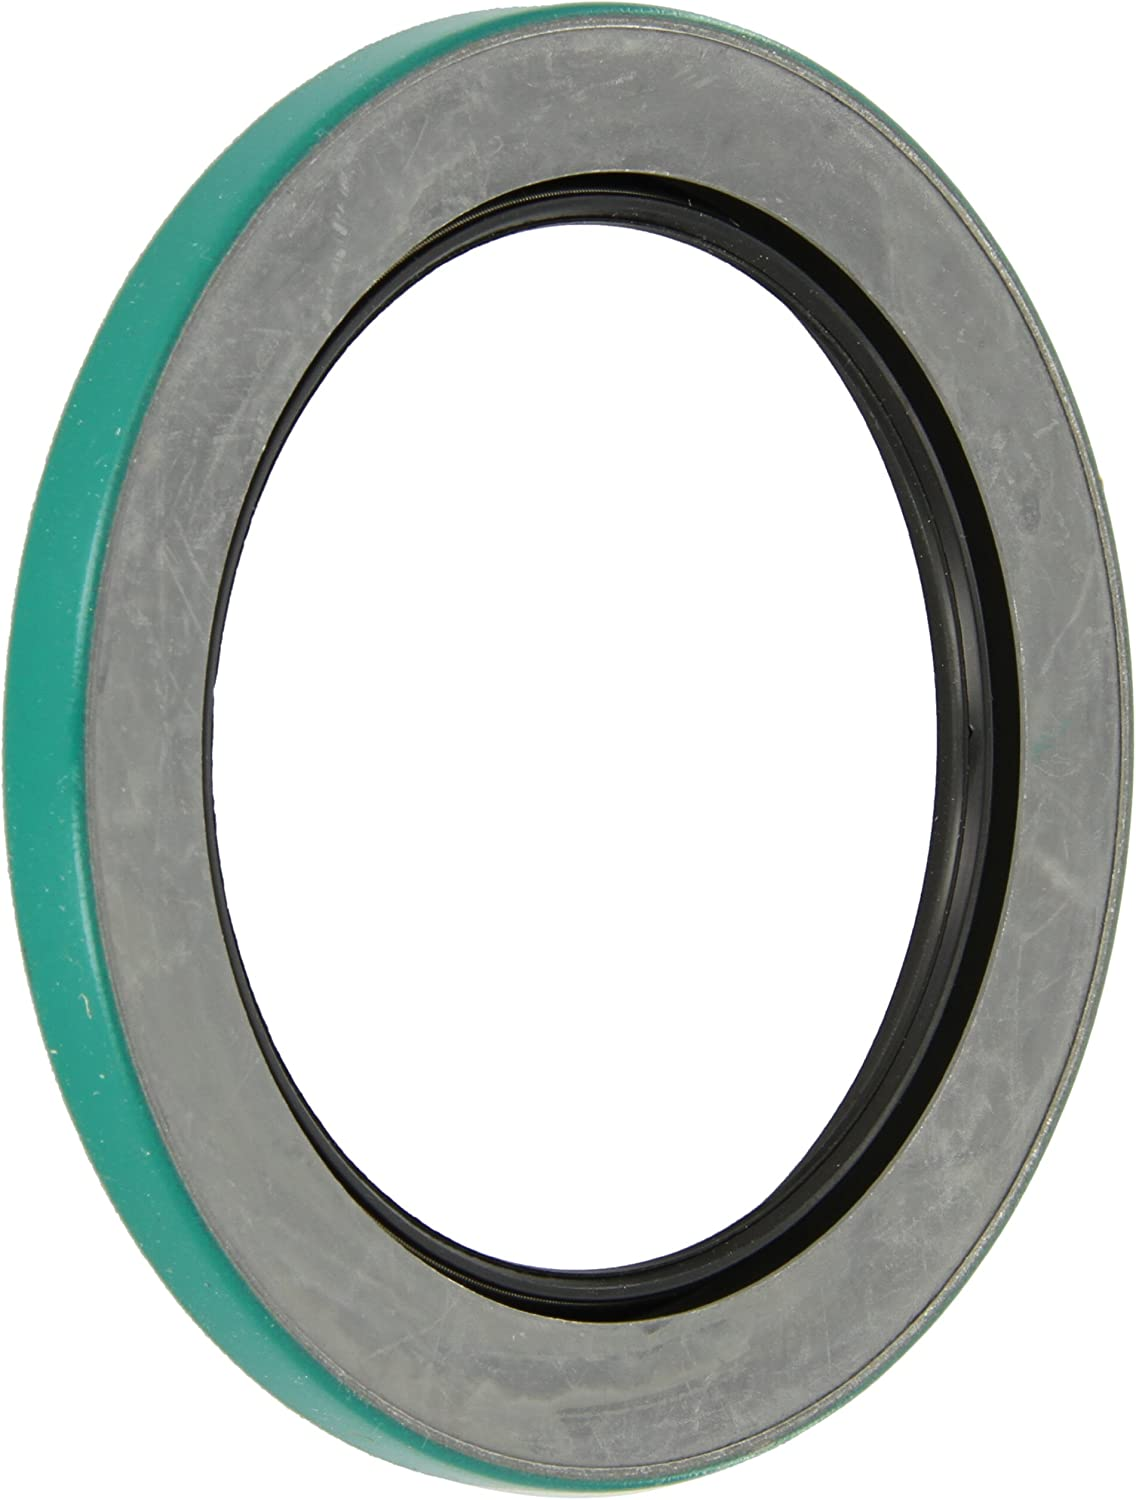 SKF 40049 LDS & Small Bore Seal, R Lip Code, CRWH1 Style, Inch, 4